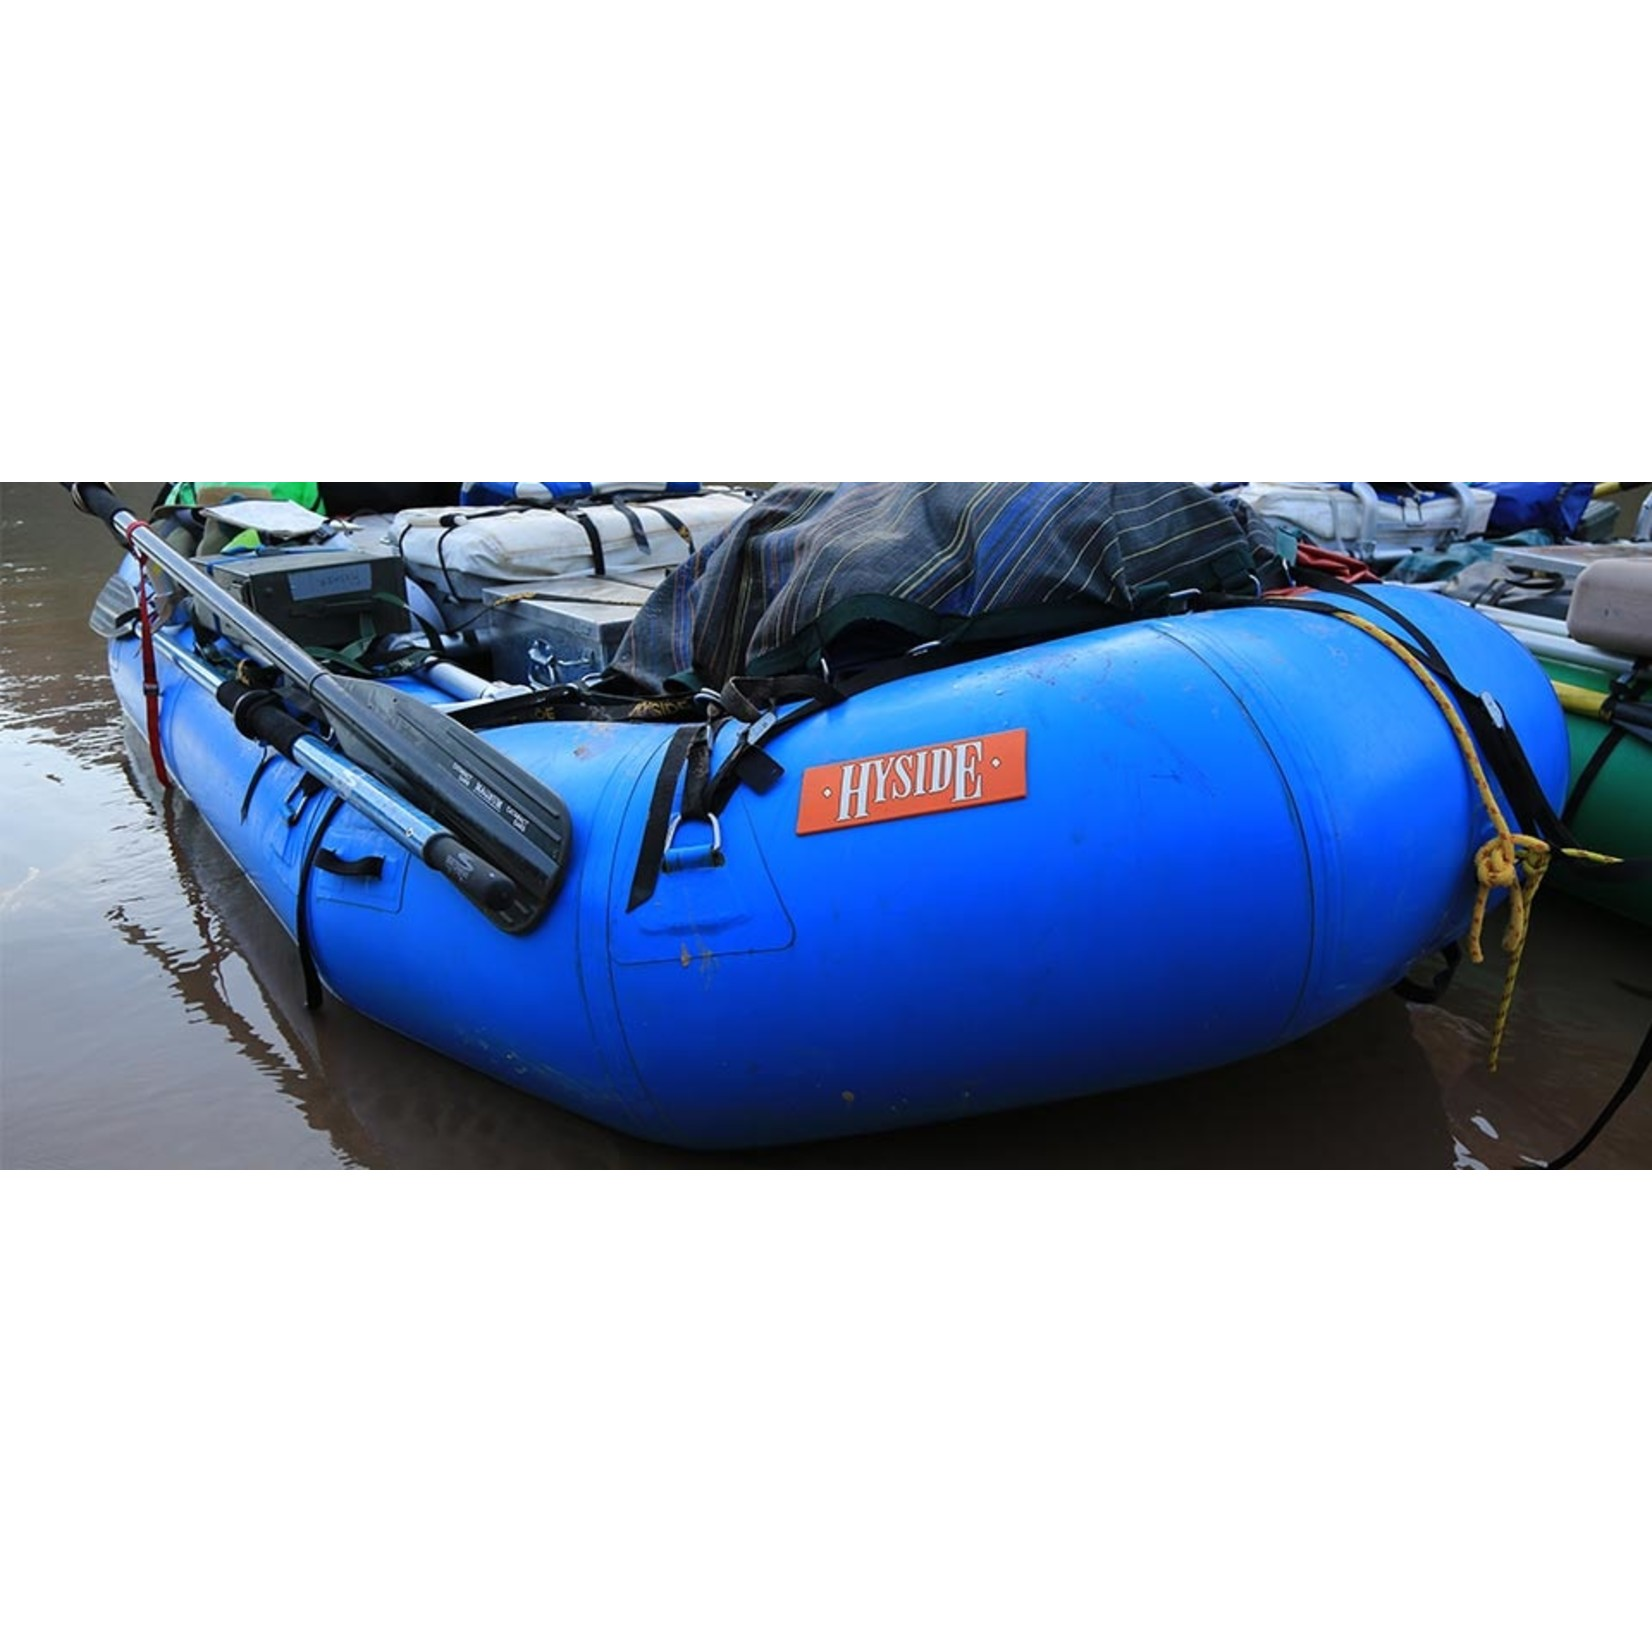 Hyside Inflatables Hyside Pro 15.0